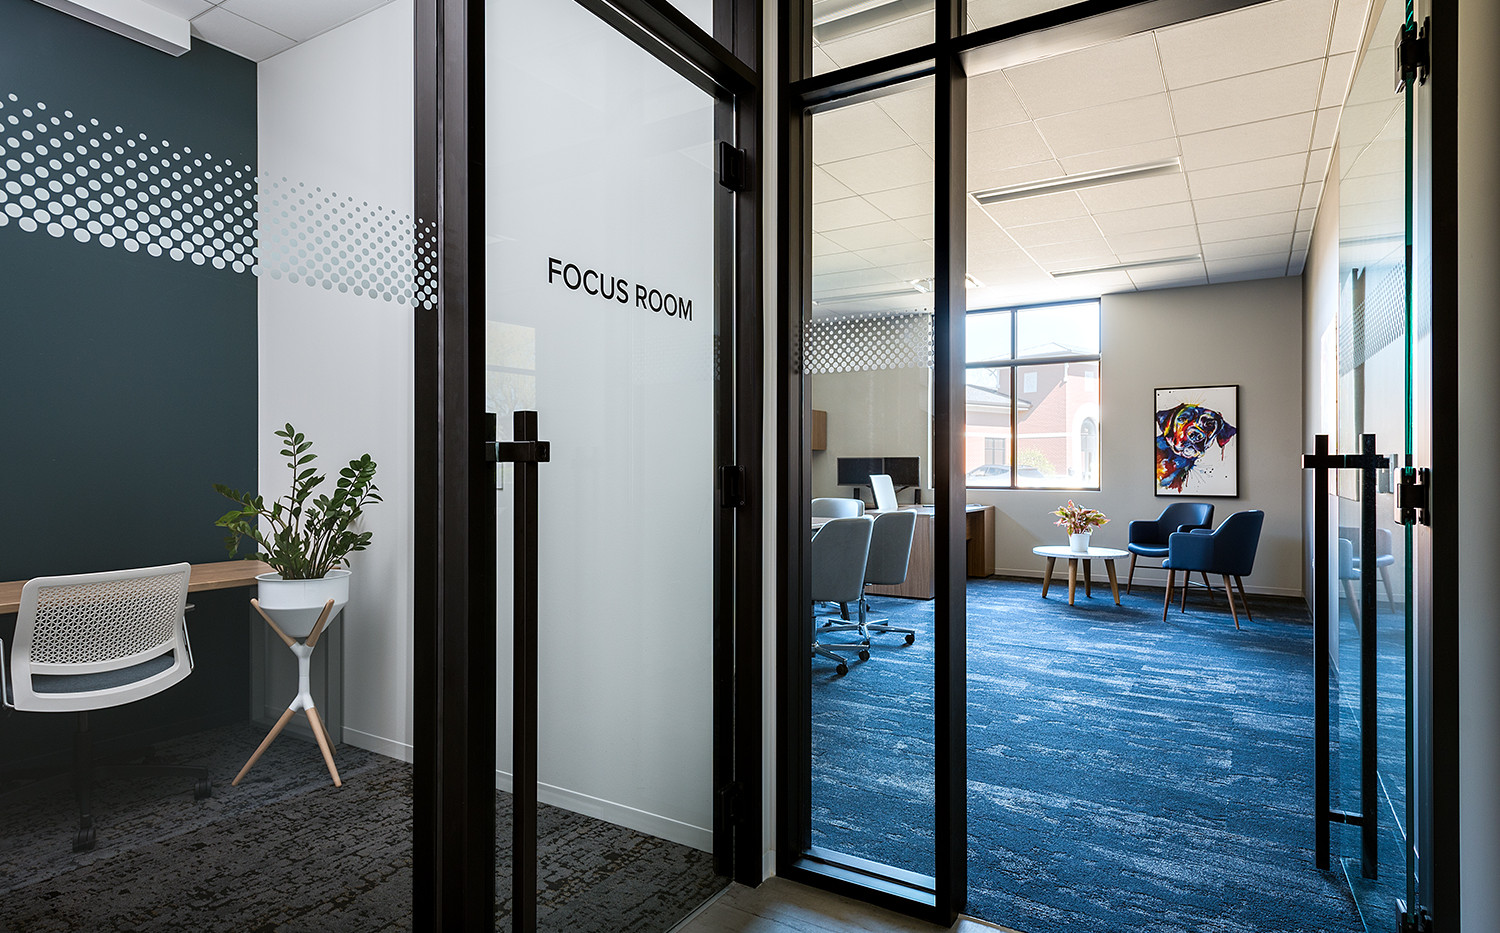 10 - Focus Room and Executive Office.jpg